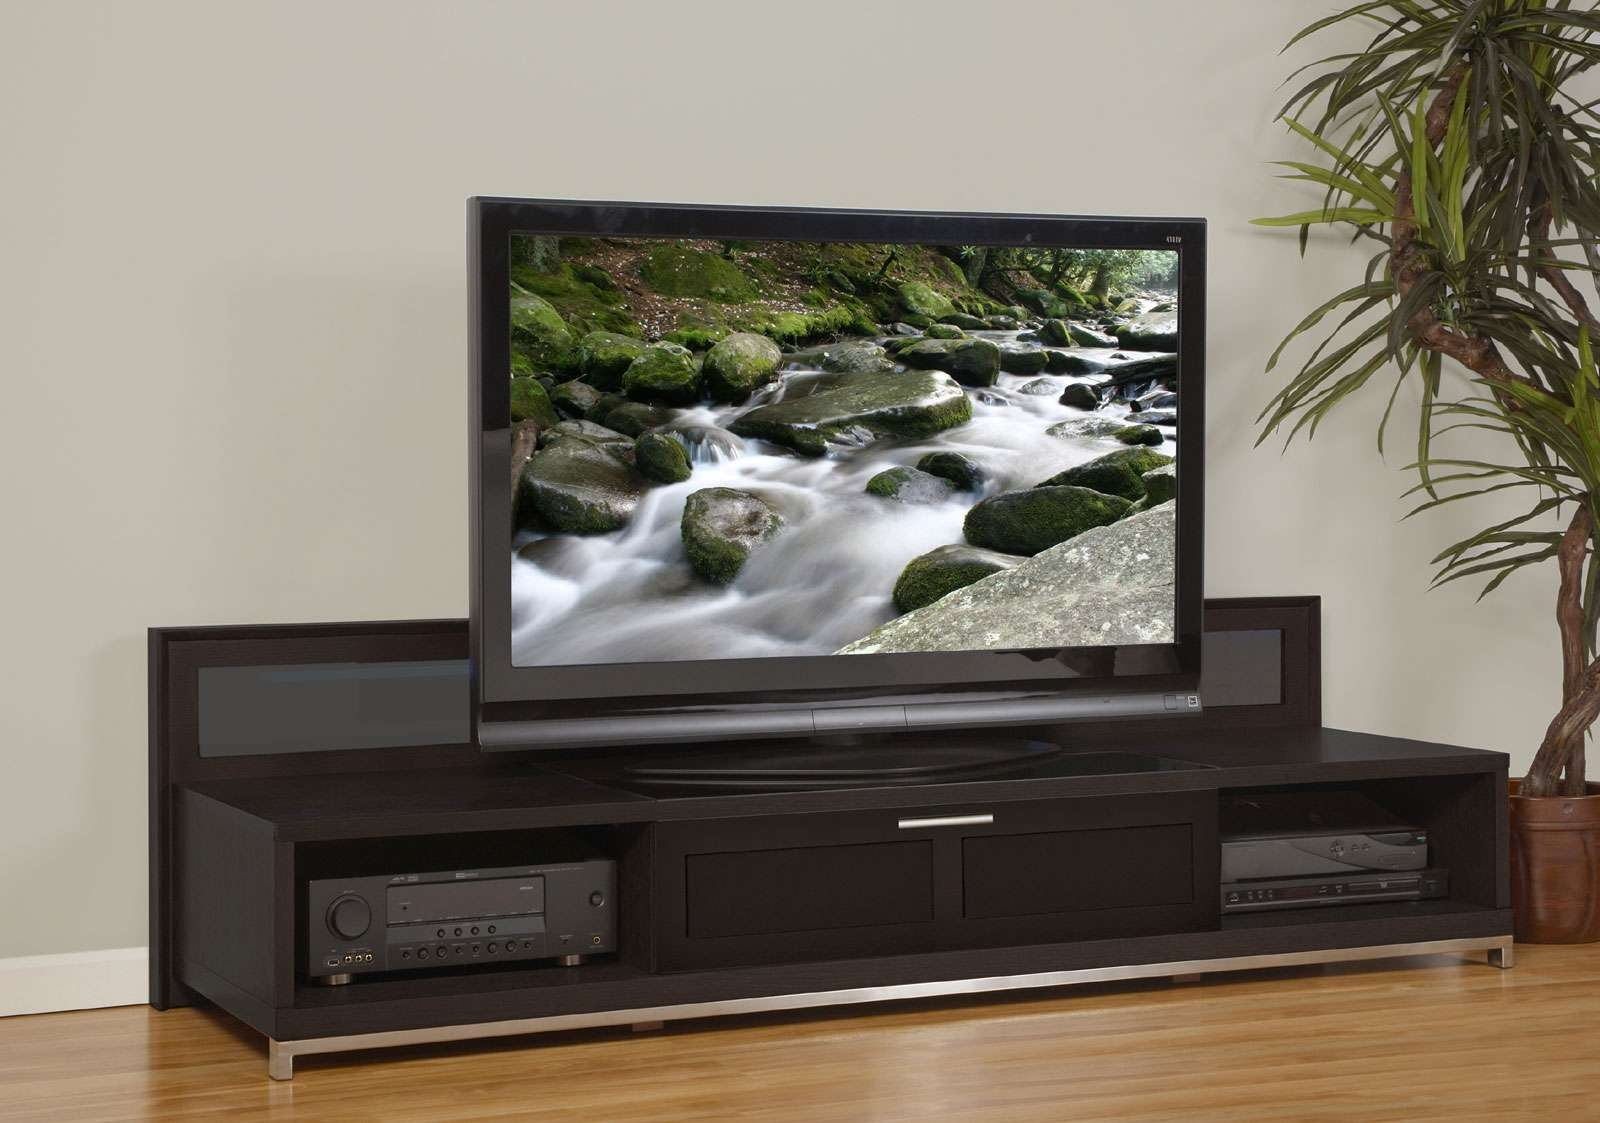 Mocca Stained Solid Wood Low Profile Tv Stand With Stainless Steel Inside Low Profile Contemporary Tv Stands (View 4 of 20)